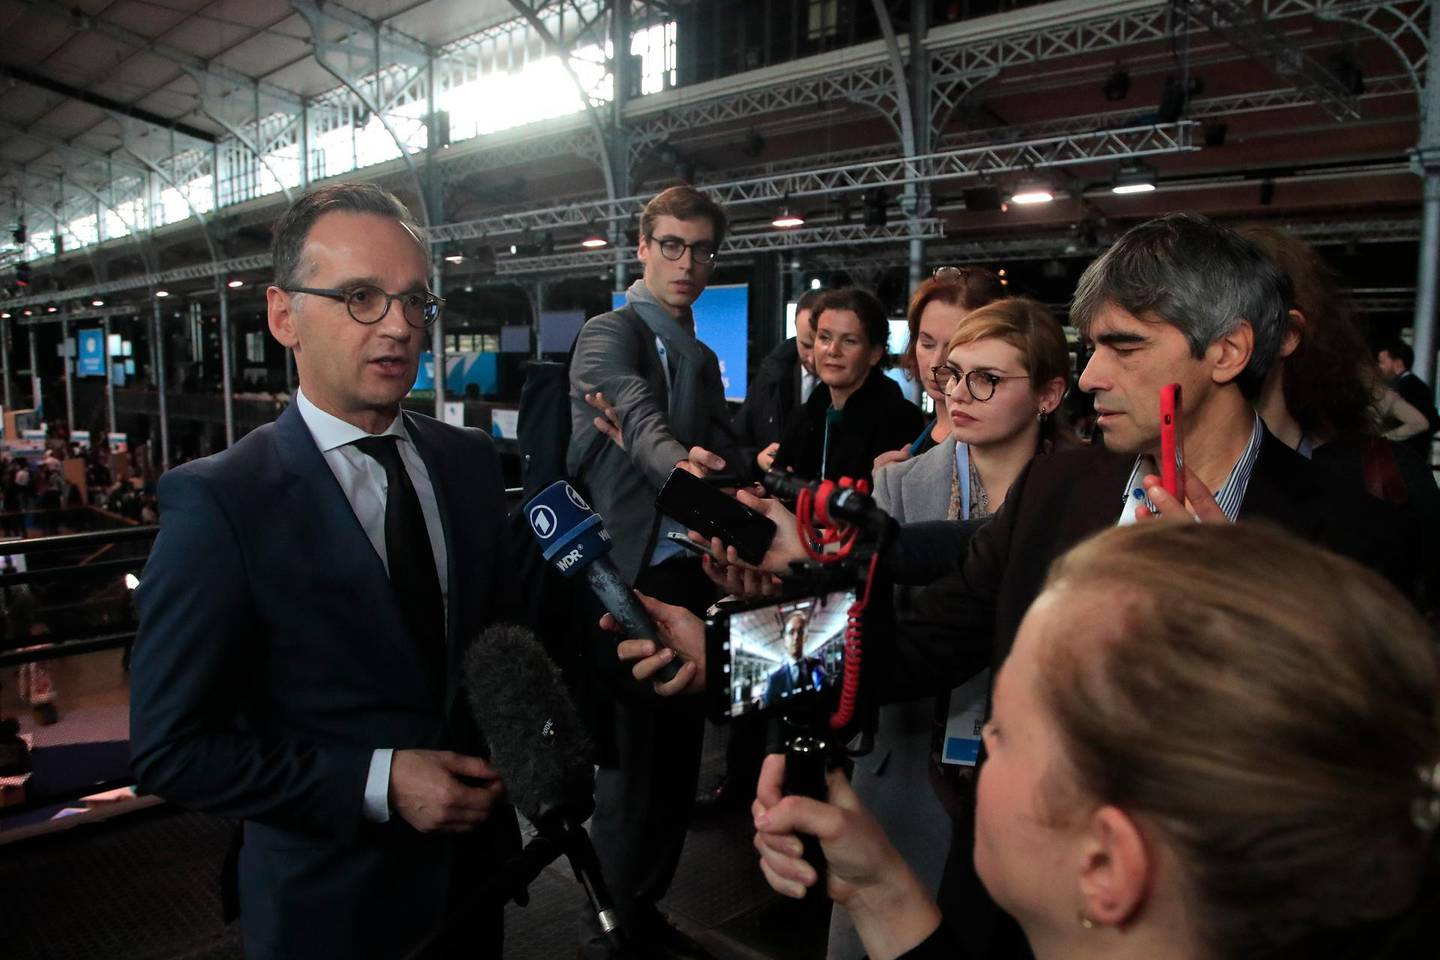 German Foreign Minister Heiko Maas answers reporters as he attends the Paris Peace Forum, Tuesday, Nov. 12, 2019 in Paris. (AP Photo/Michel Euler)